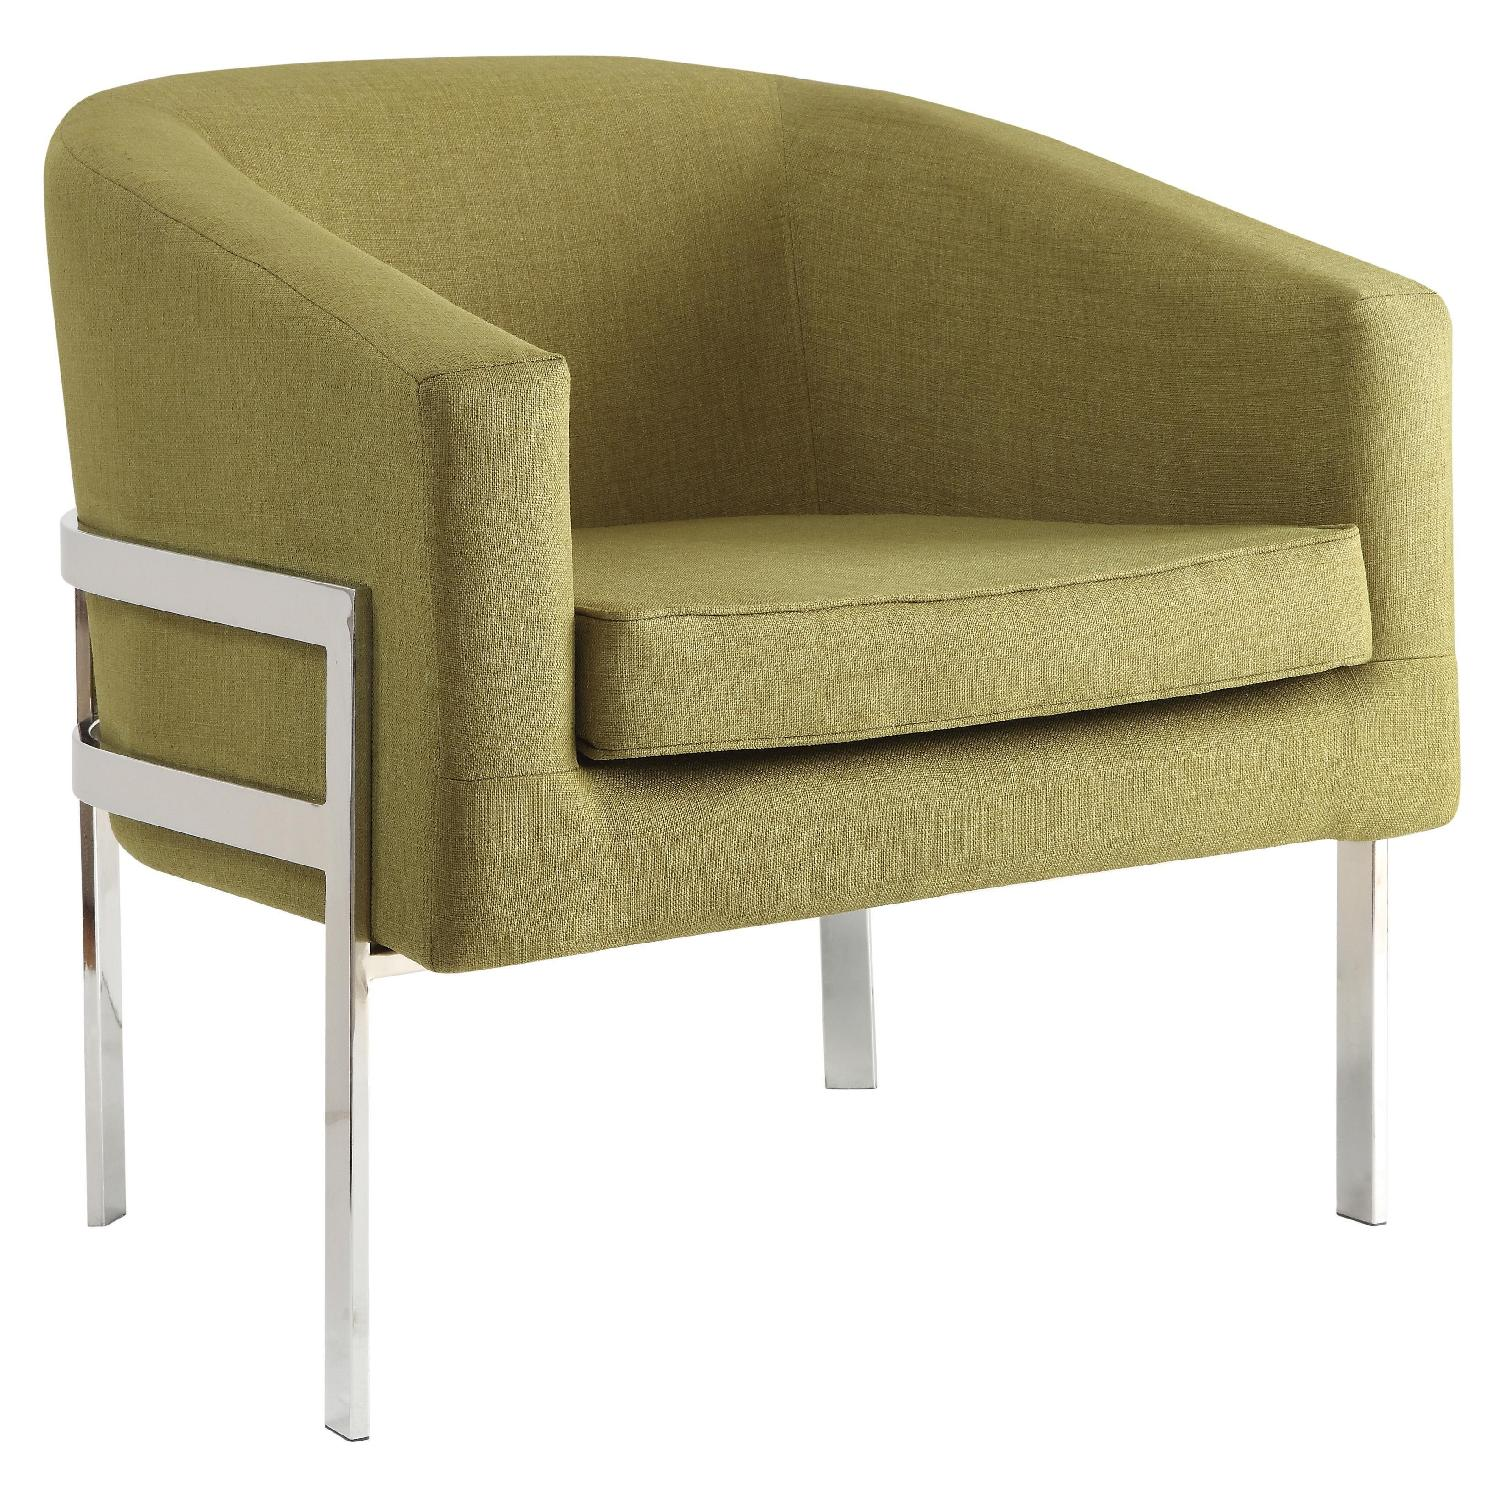 Contemporary Accent Chair in Green Linen w/ Exposed Metal Fr